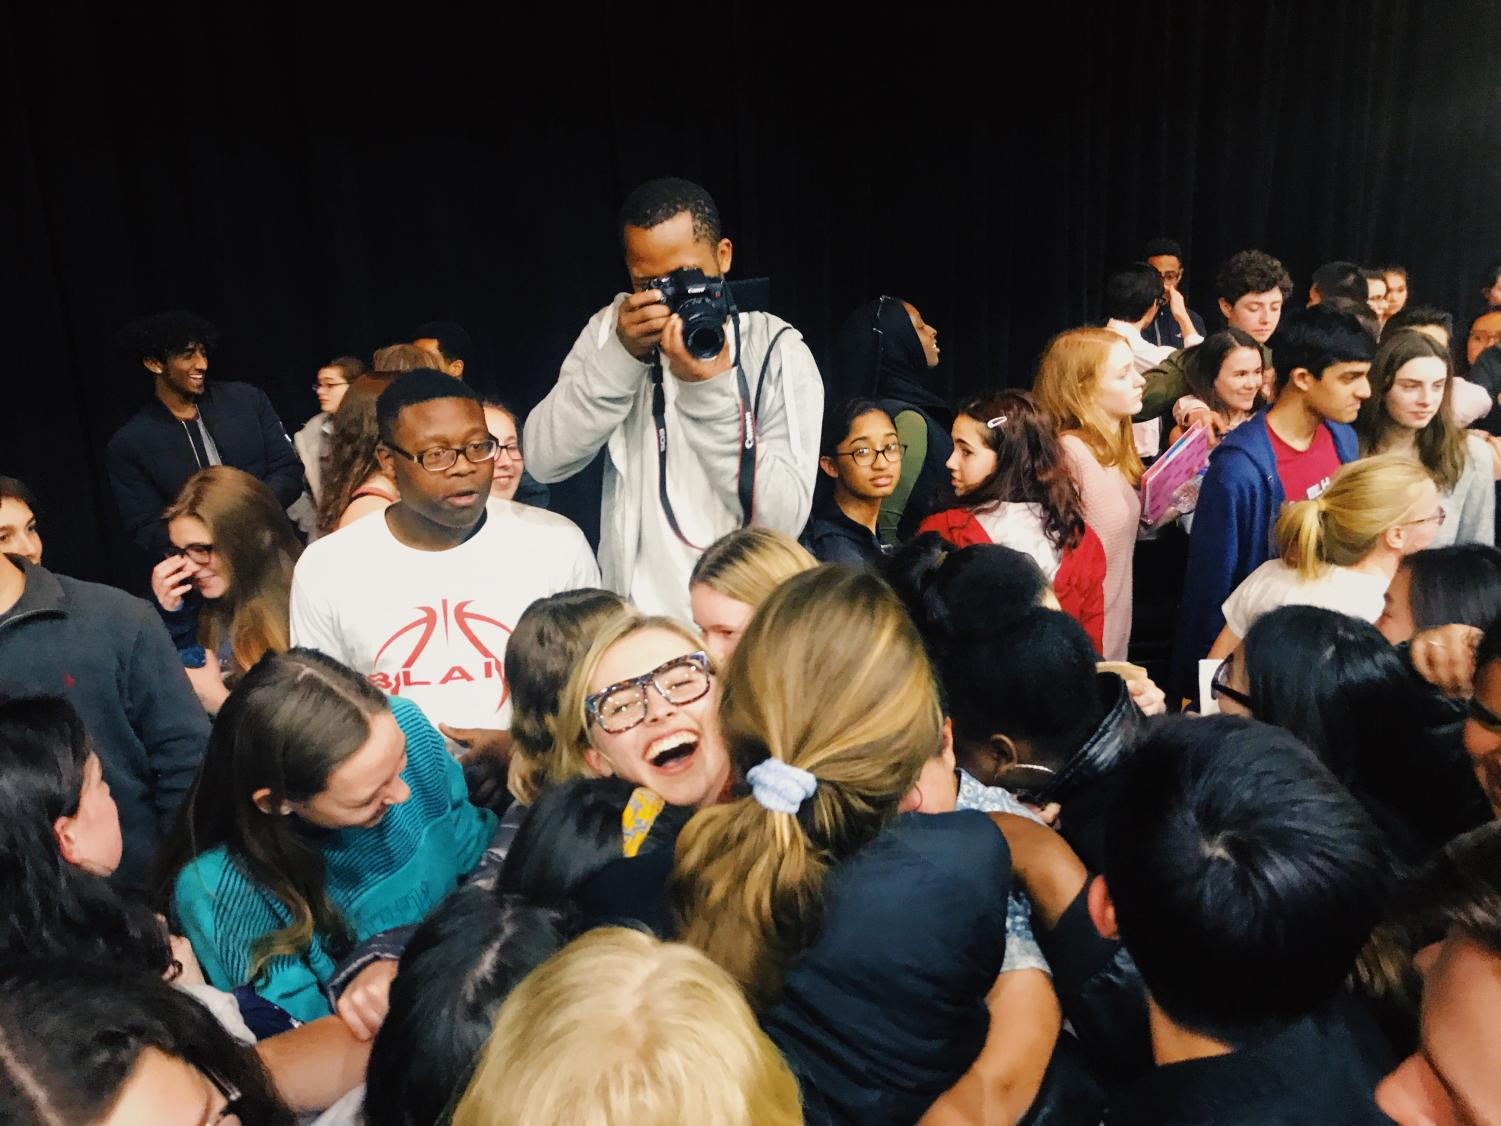 Marjory Stoneman Douglas High School survivor Delaney Tarr gives MCPS students a group hug after the event